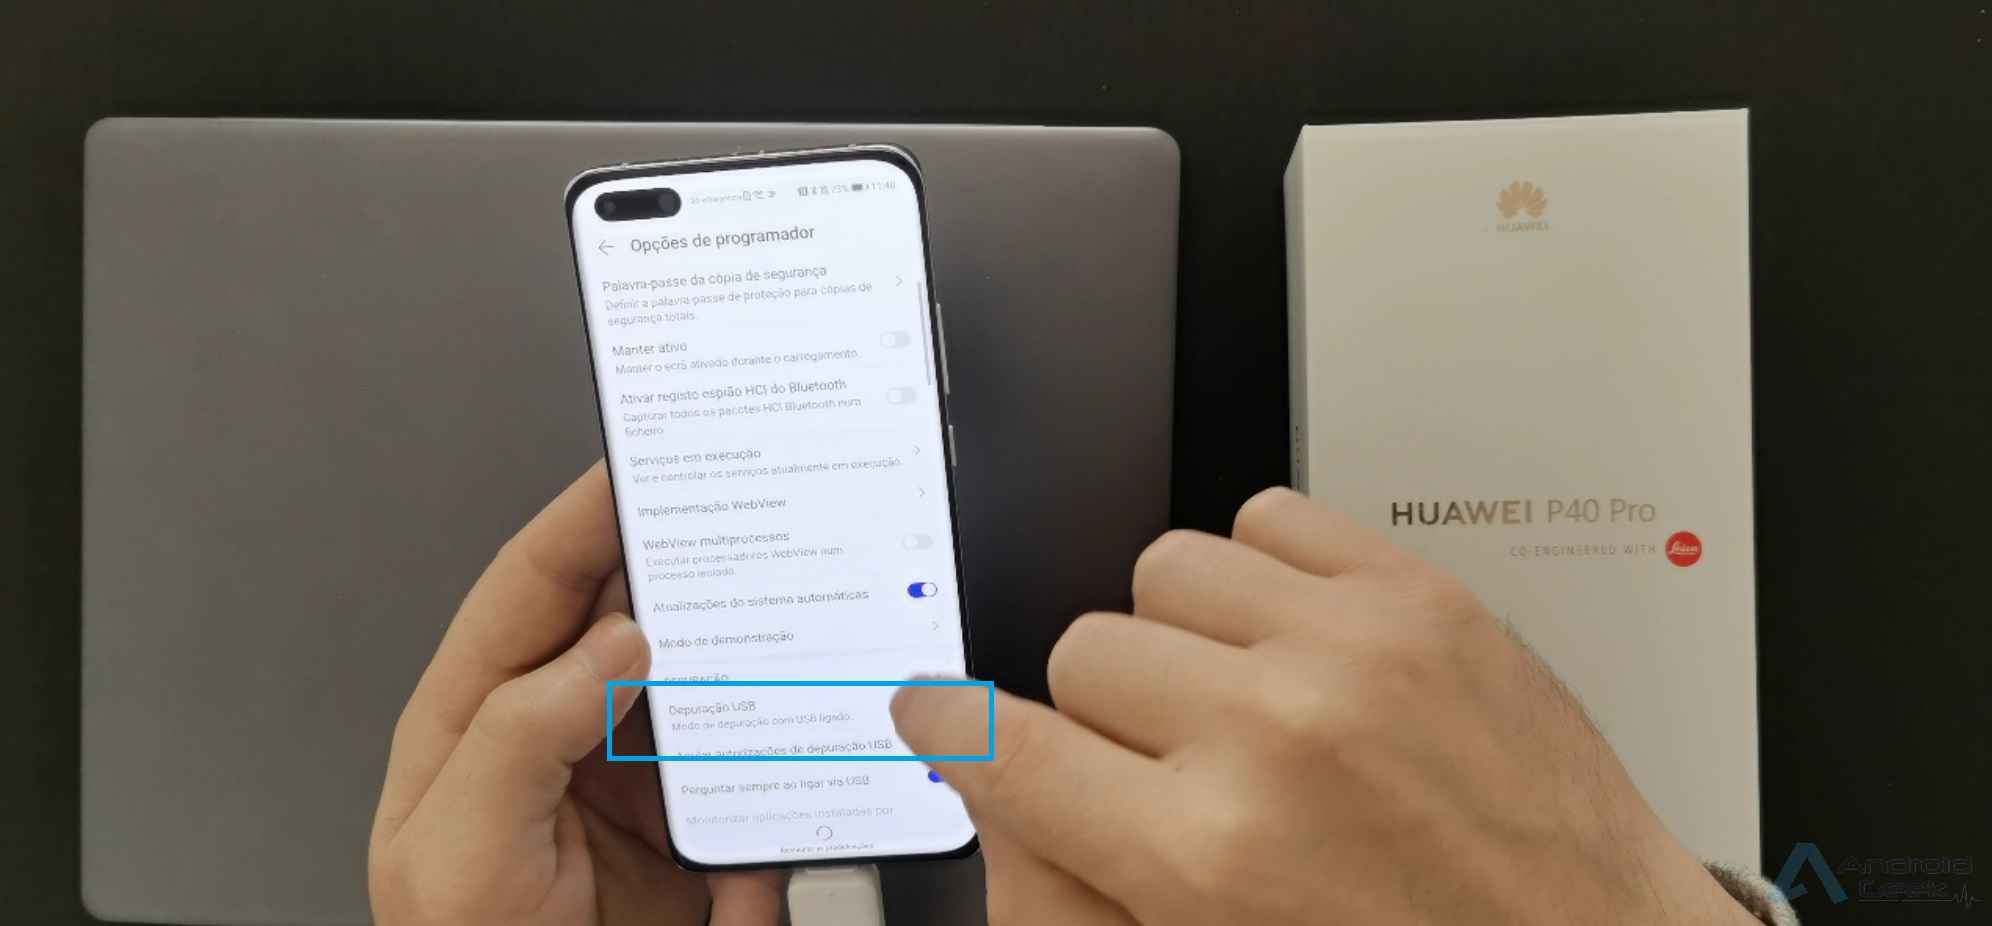 How to add a Google account to Huawei P40 Pro after installing GMS? 6